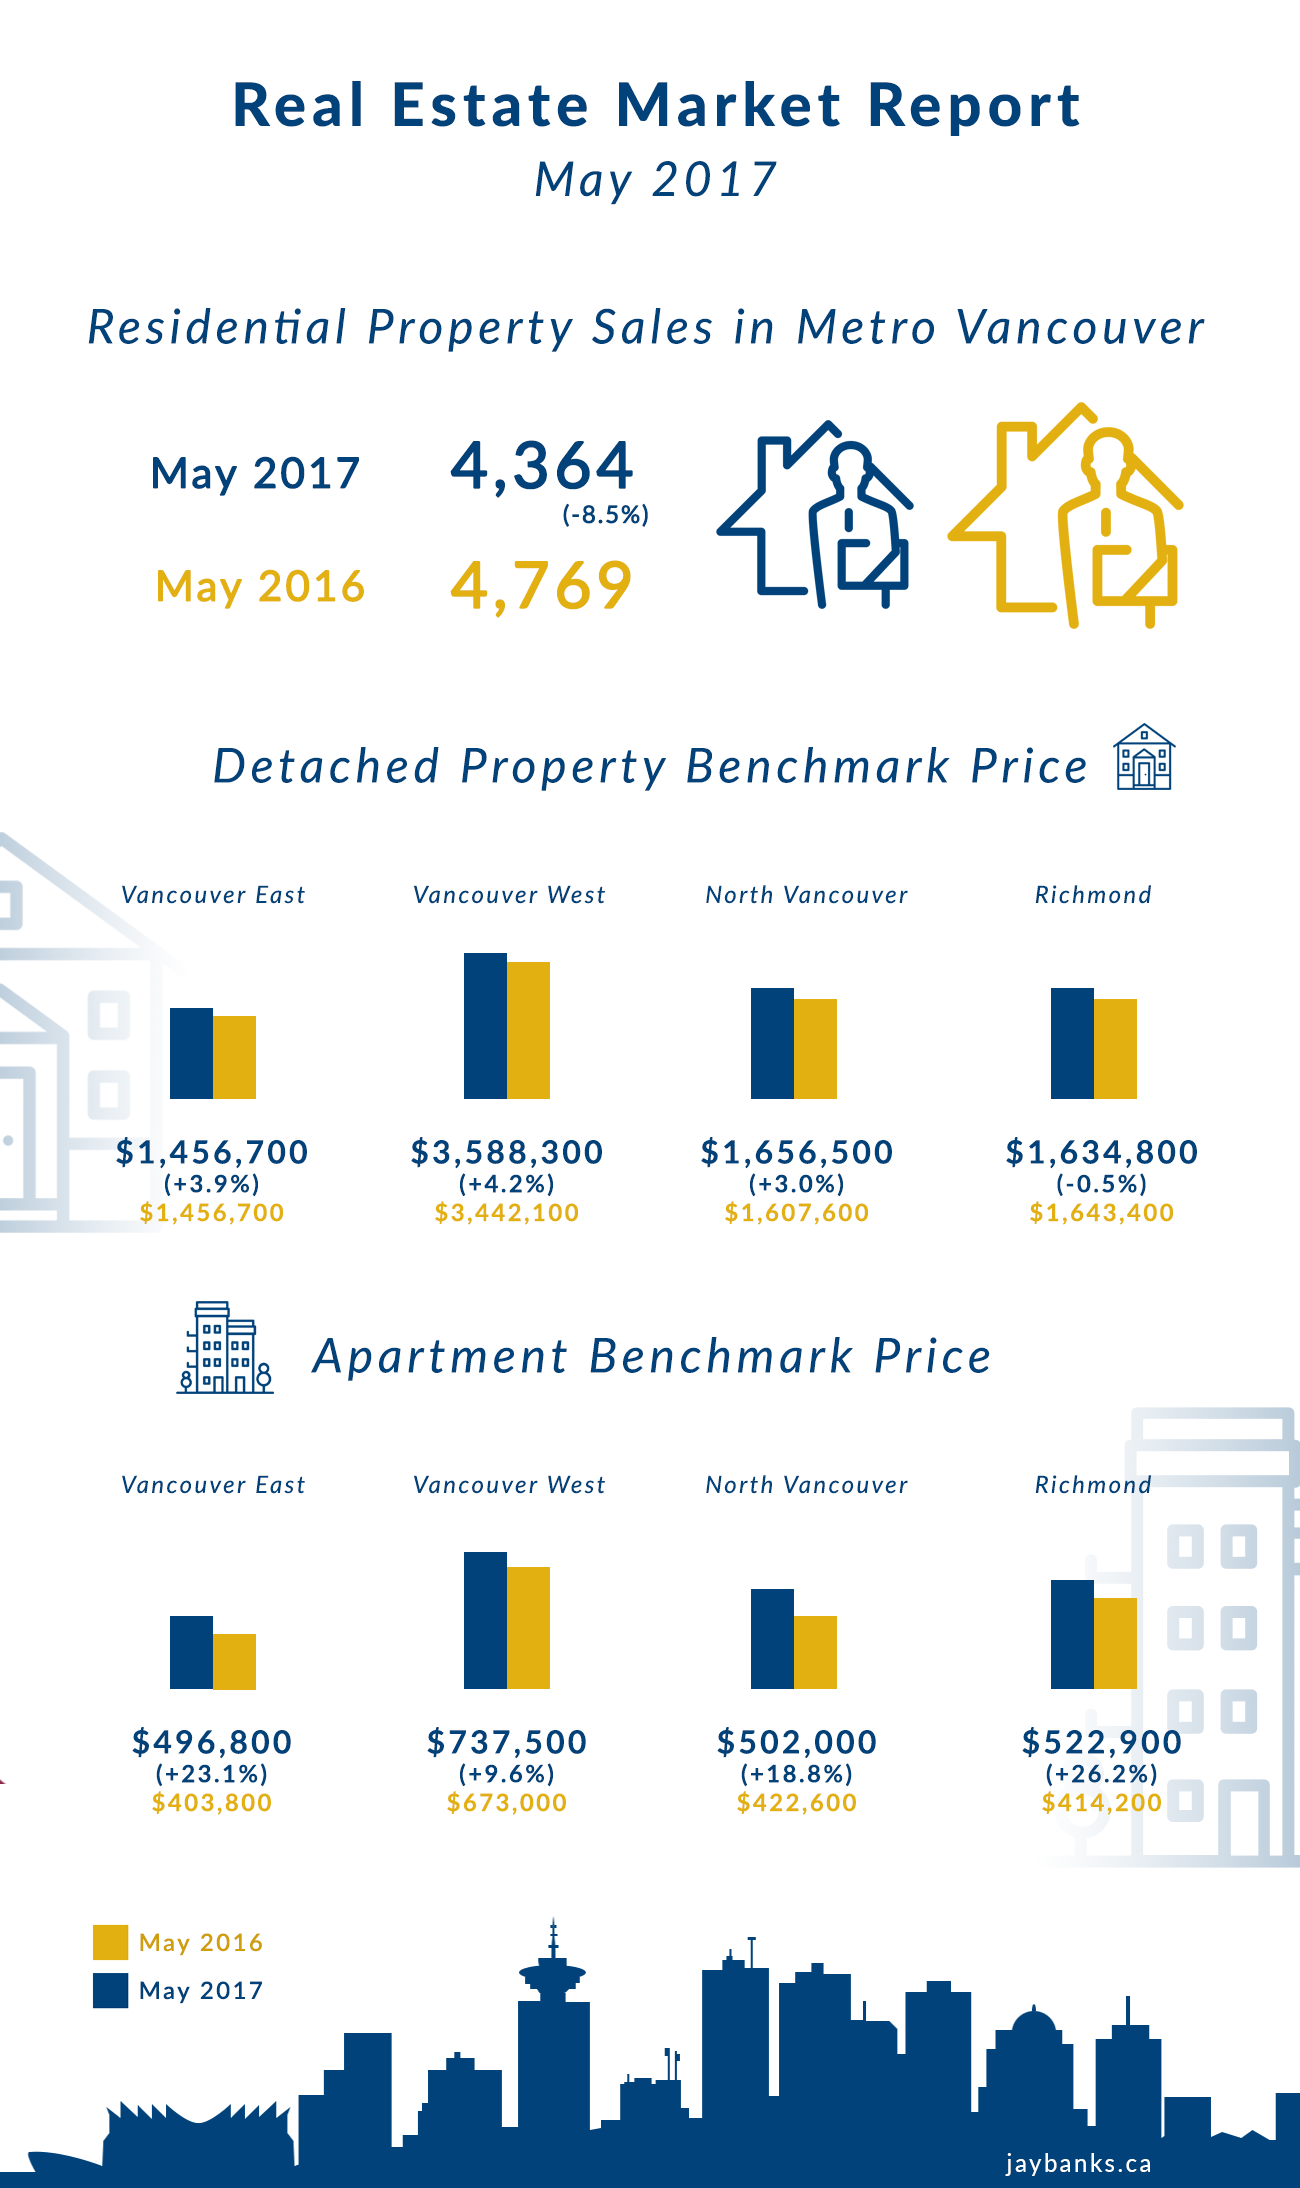 Townhomes As An Alternative To A Detached Home Are Much More Affordable And  Highly Sought After Some Areas Have Built More Inventory Over The Past  Years